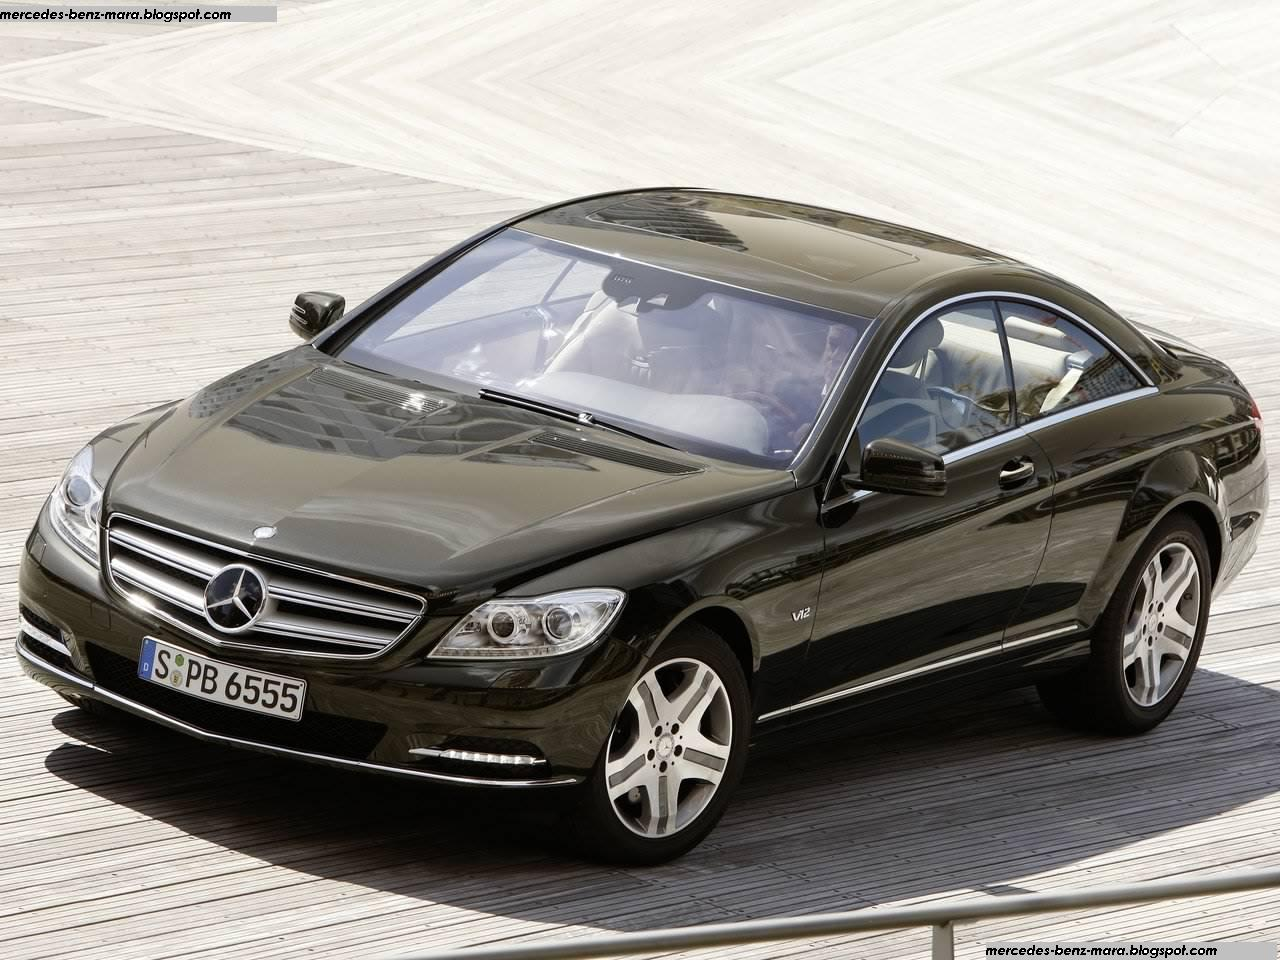 Mercedes Benz Auto twenty first century  2011 Mercedes Benz CL